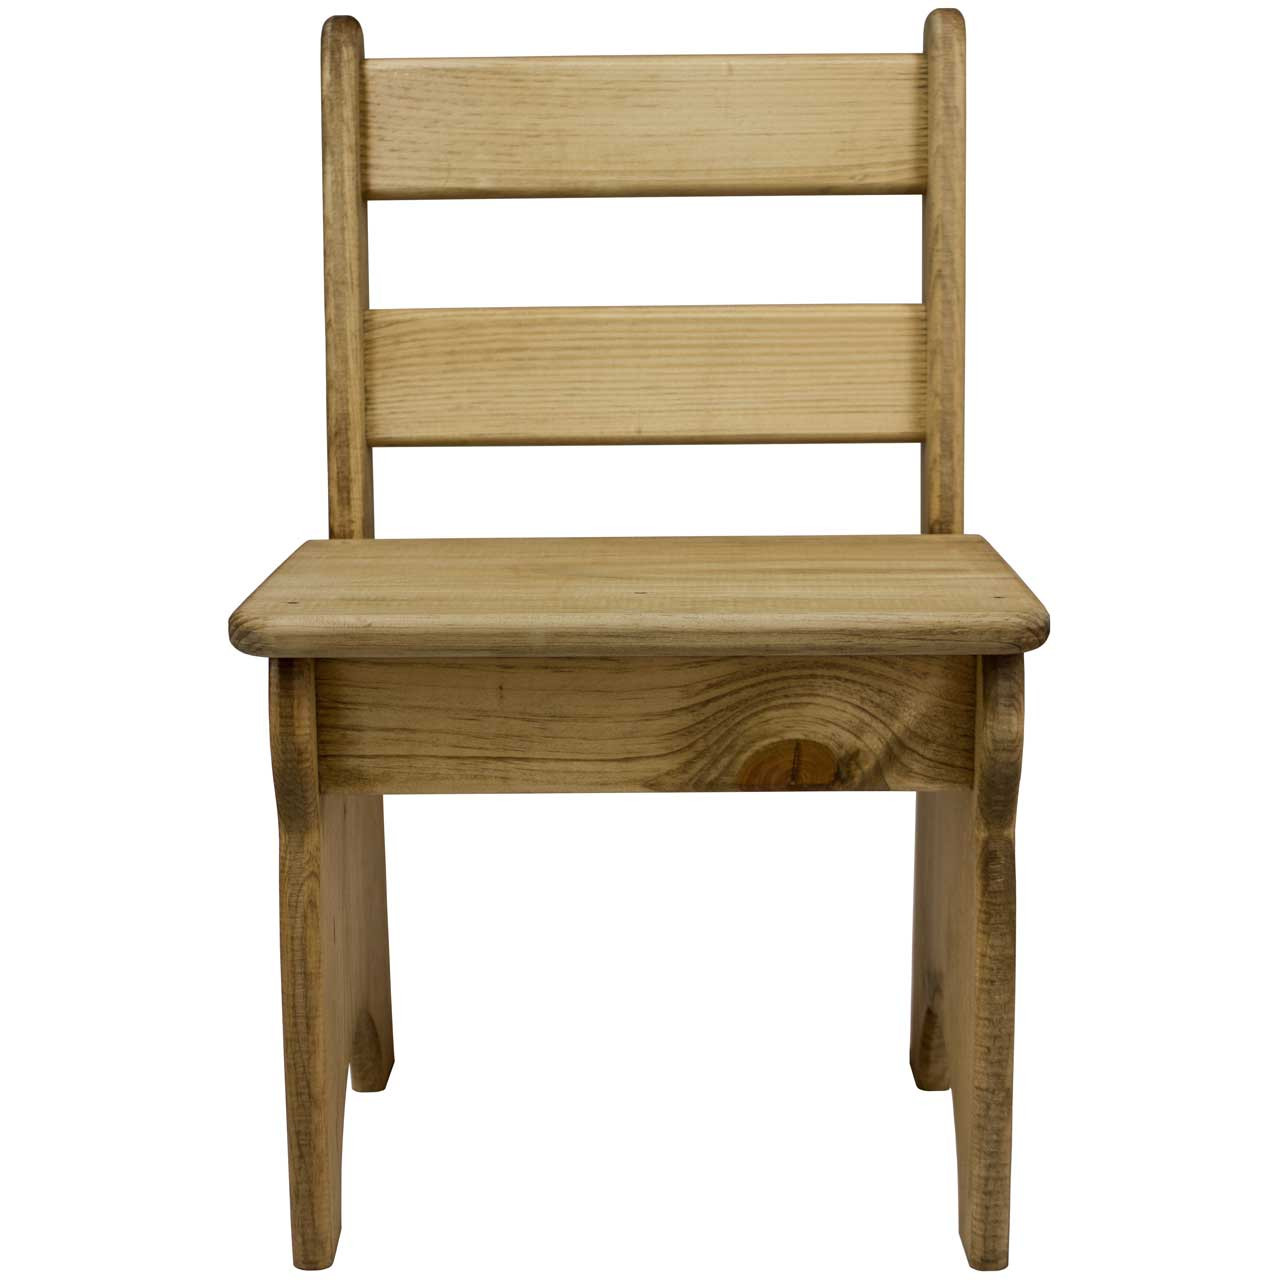 Kids Wooden Chair Wooden Toddler Chairs Small Chairs For Children